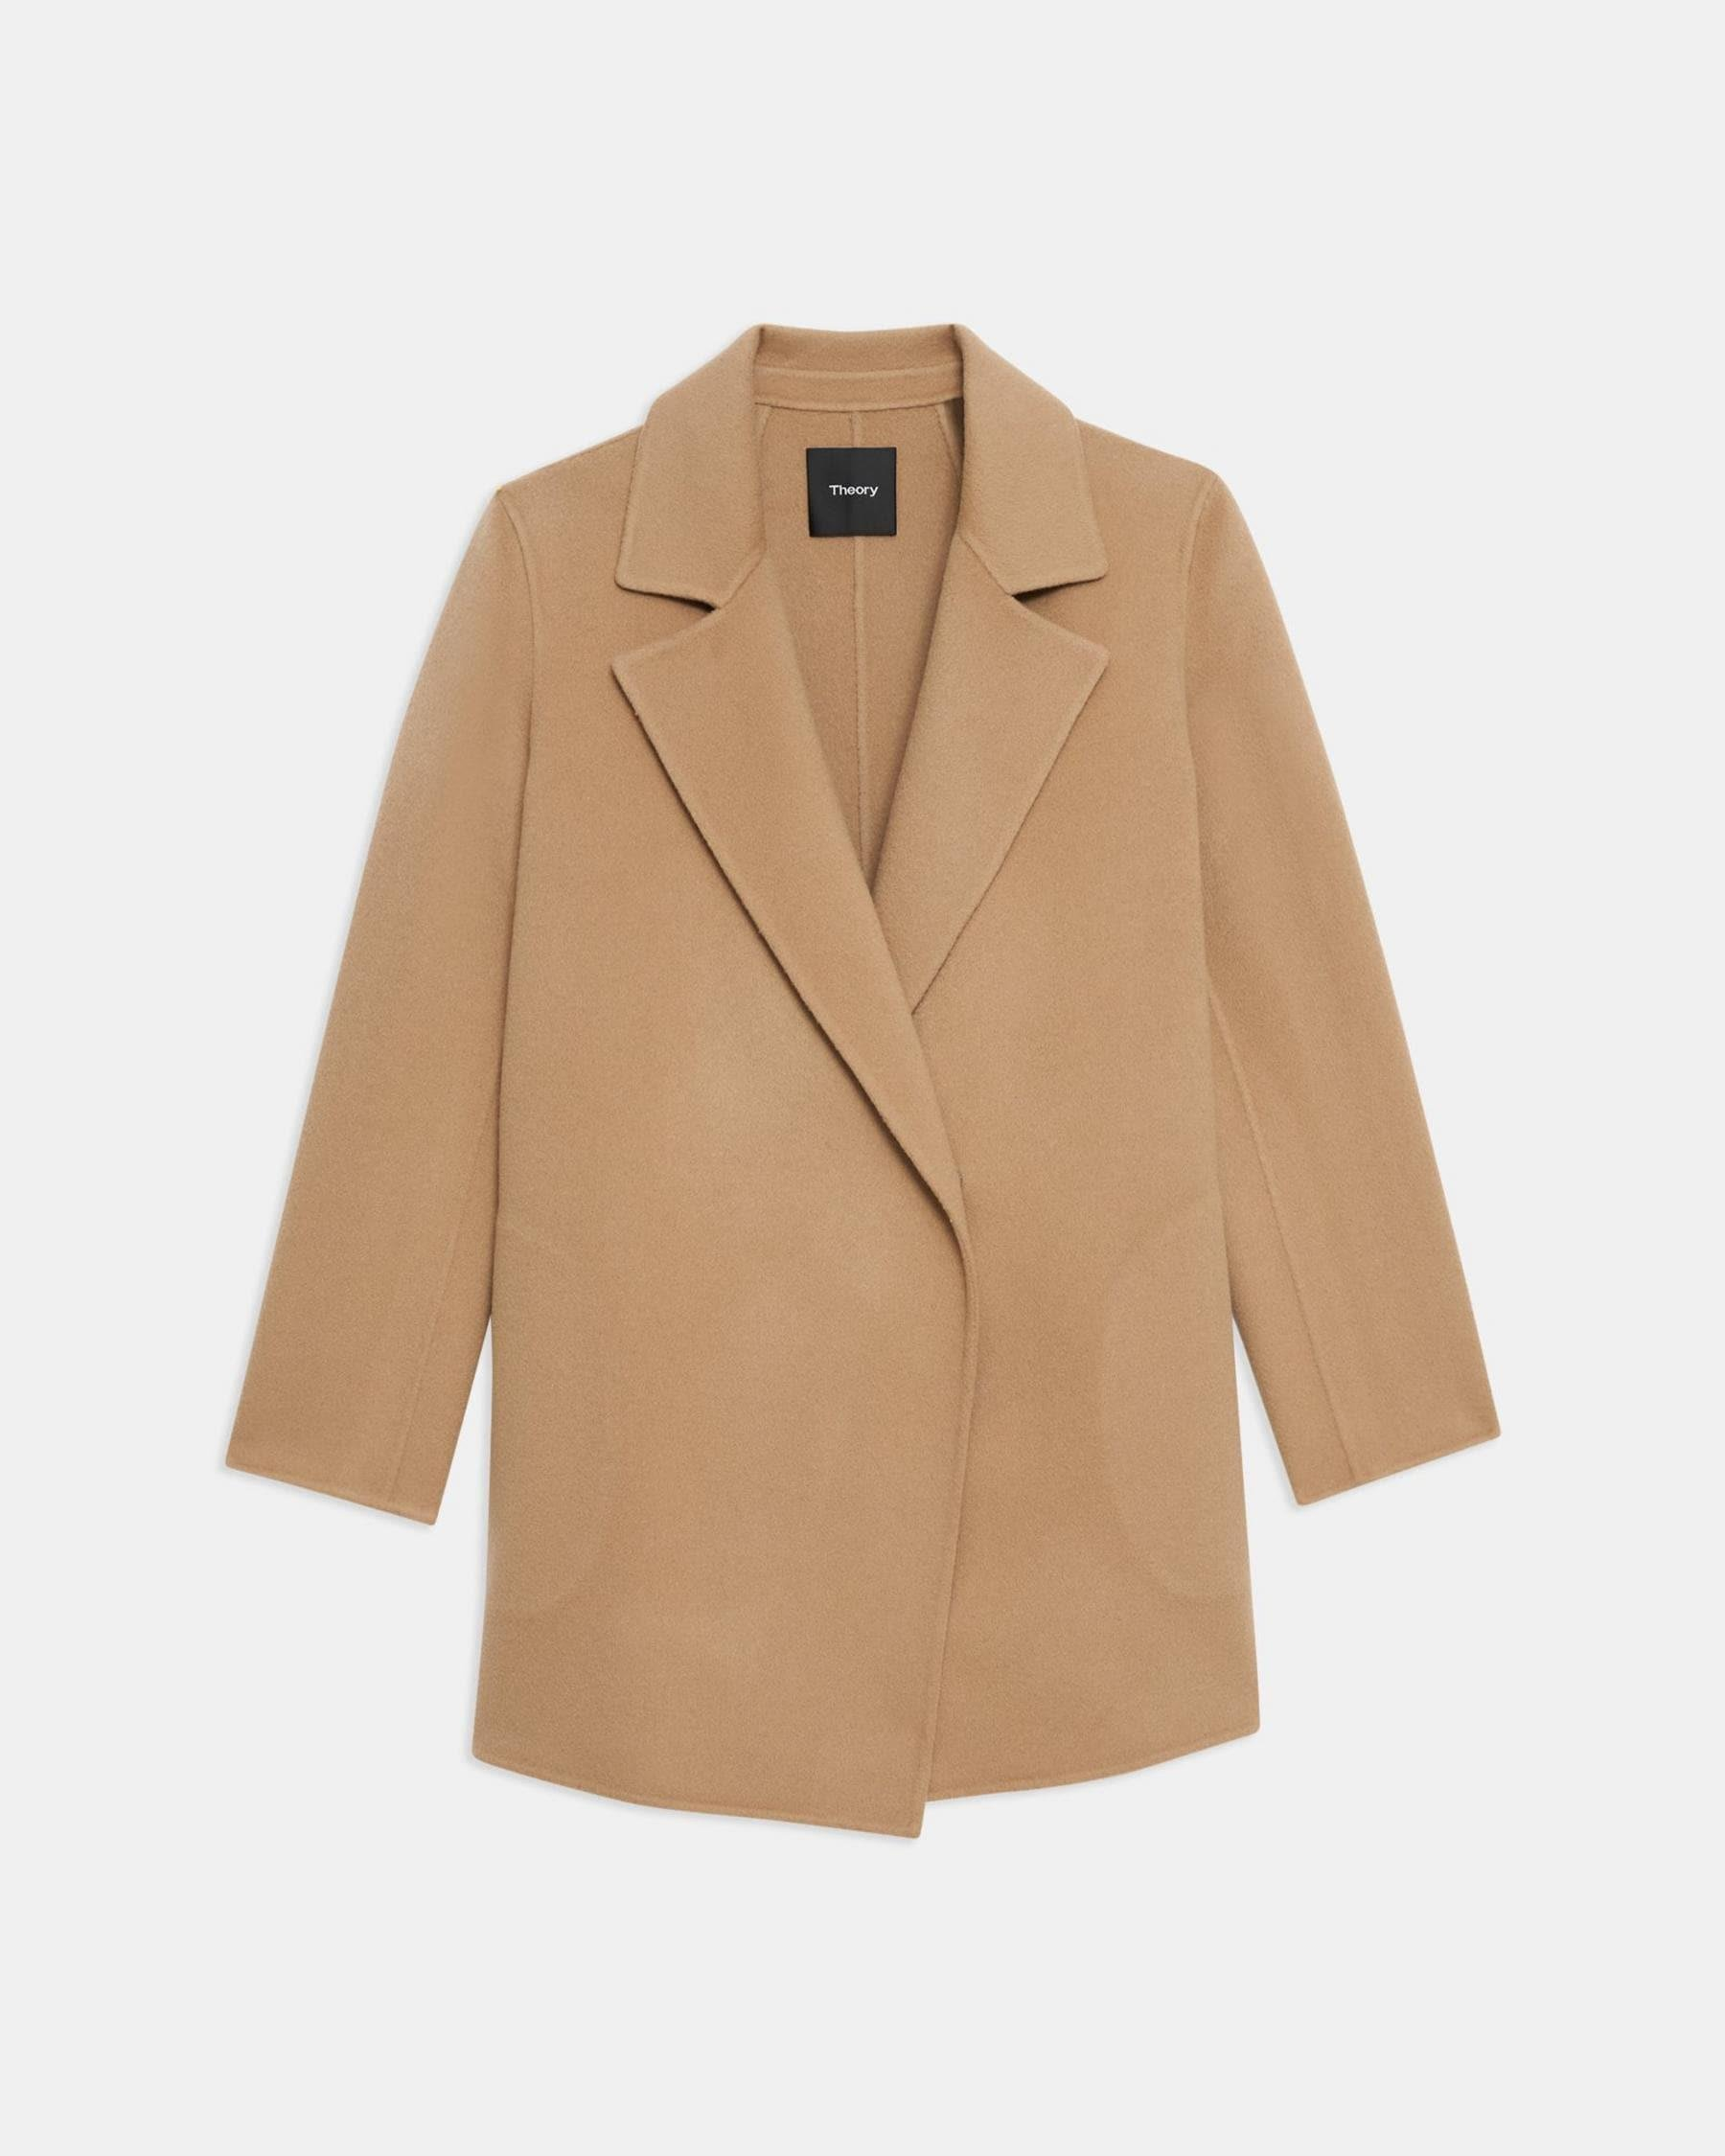 Clairene Jacket in Double-Face Wool-Cashmere 6